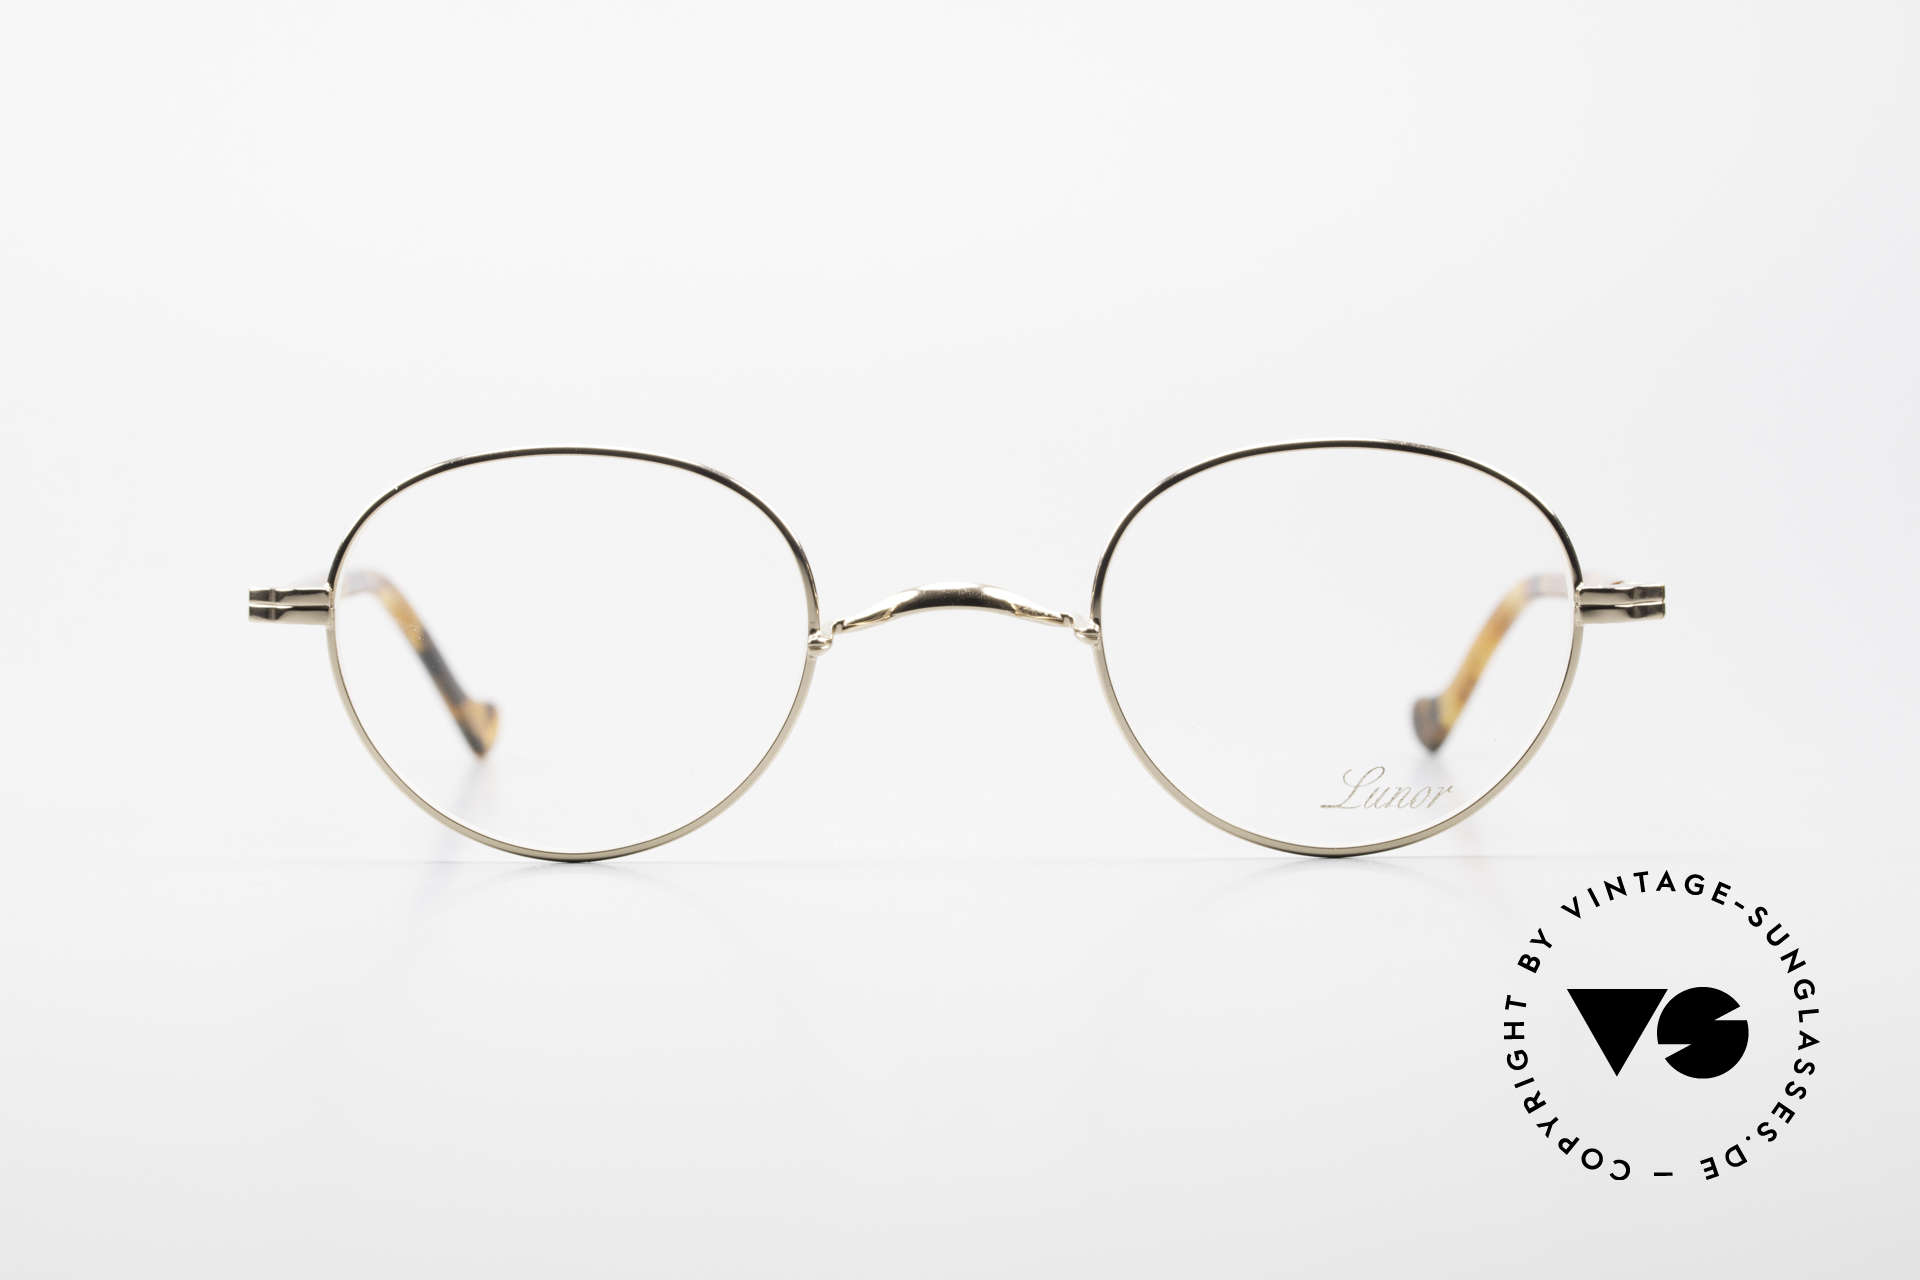 Lunor II A 22 Round Lunor Specs Gold Plated, 22ct GOLD-PLATED frame with acetate-metal temples, Made for Men and Women